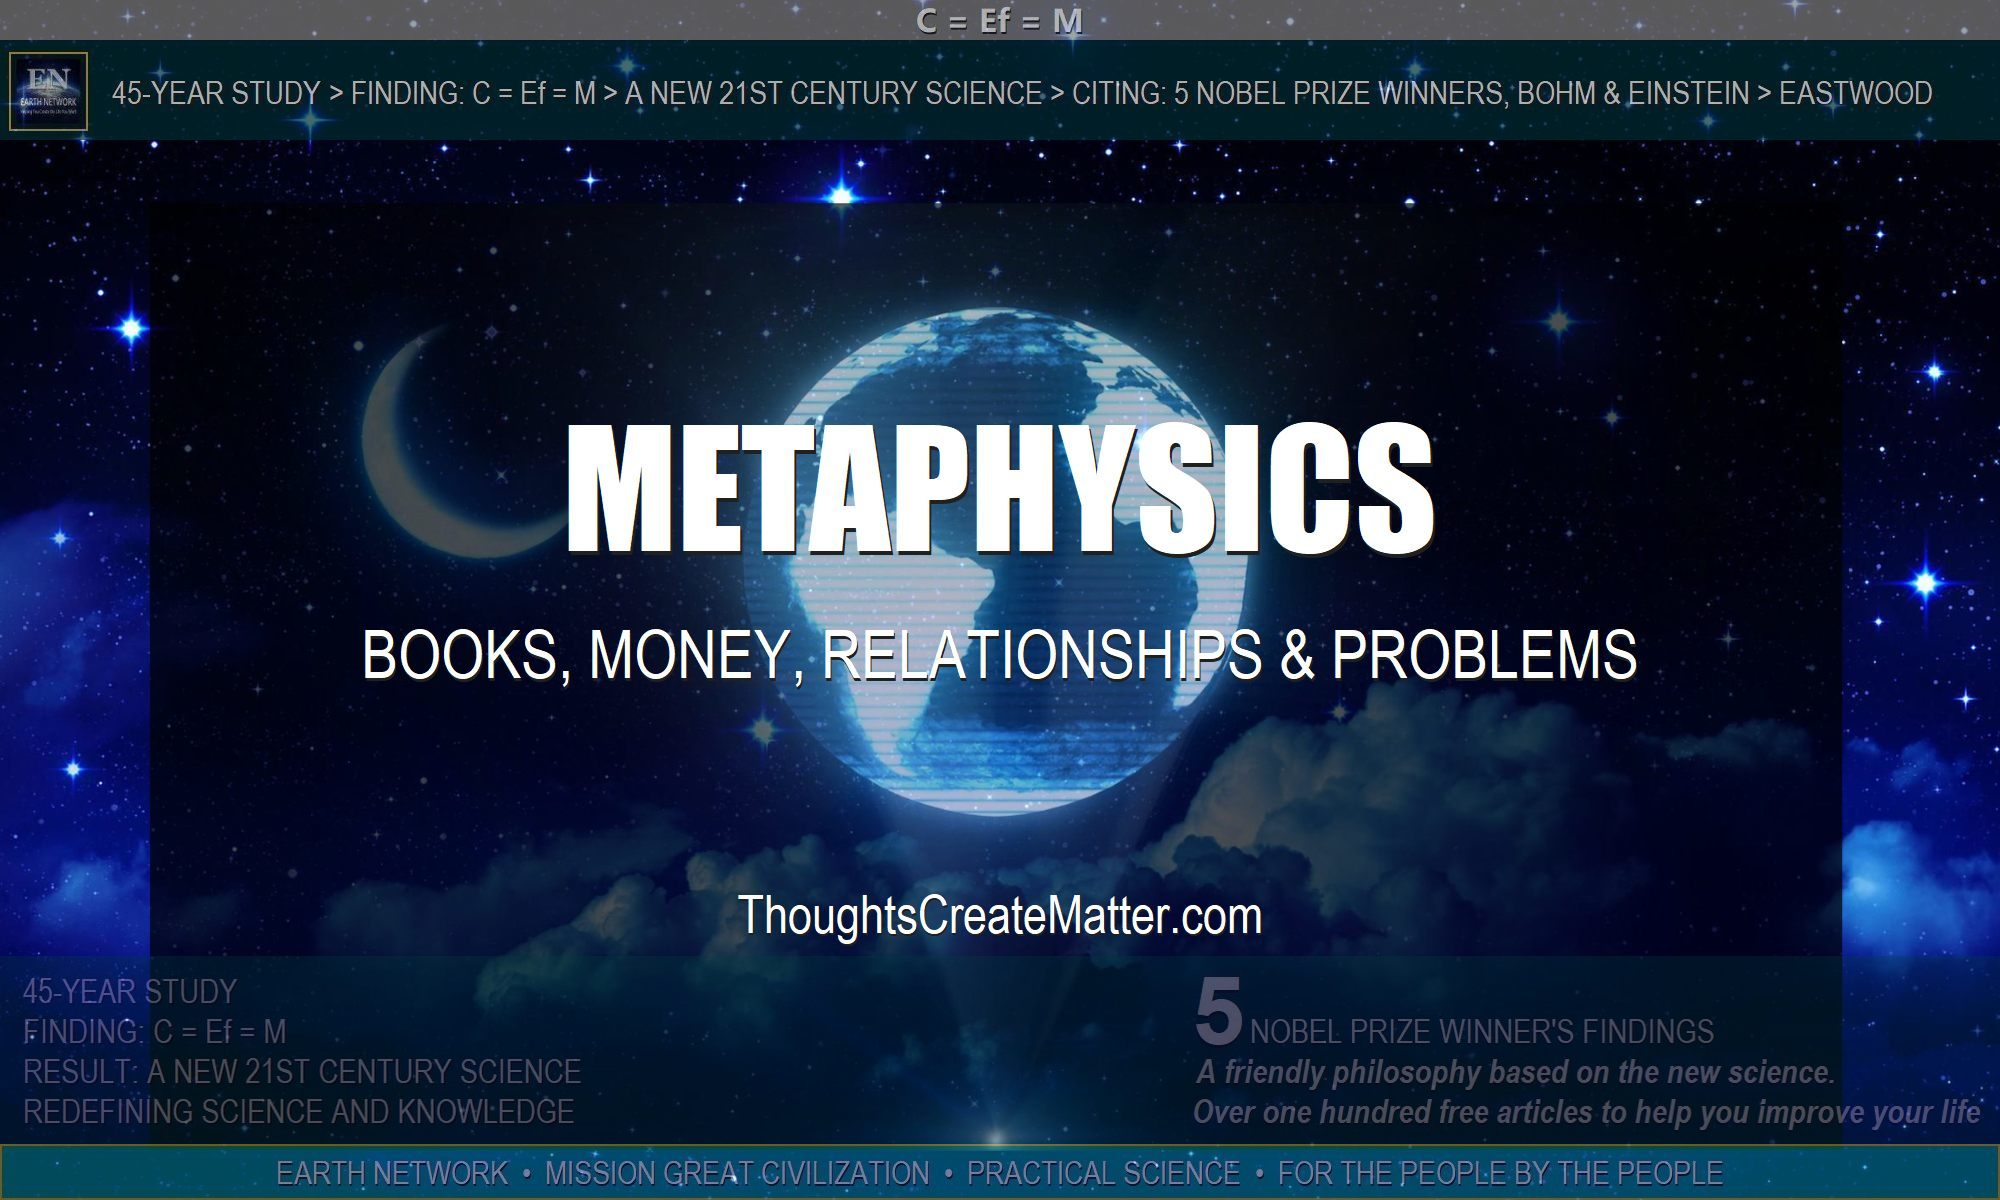 Universe depicts the metaphysical solutions given in metaphysical books on money, relationships and solving problems.